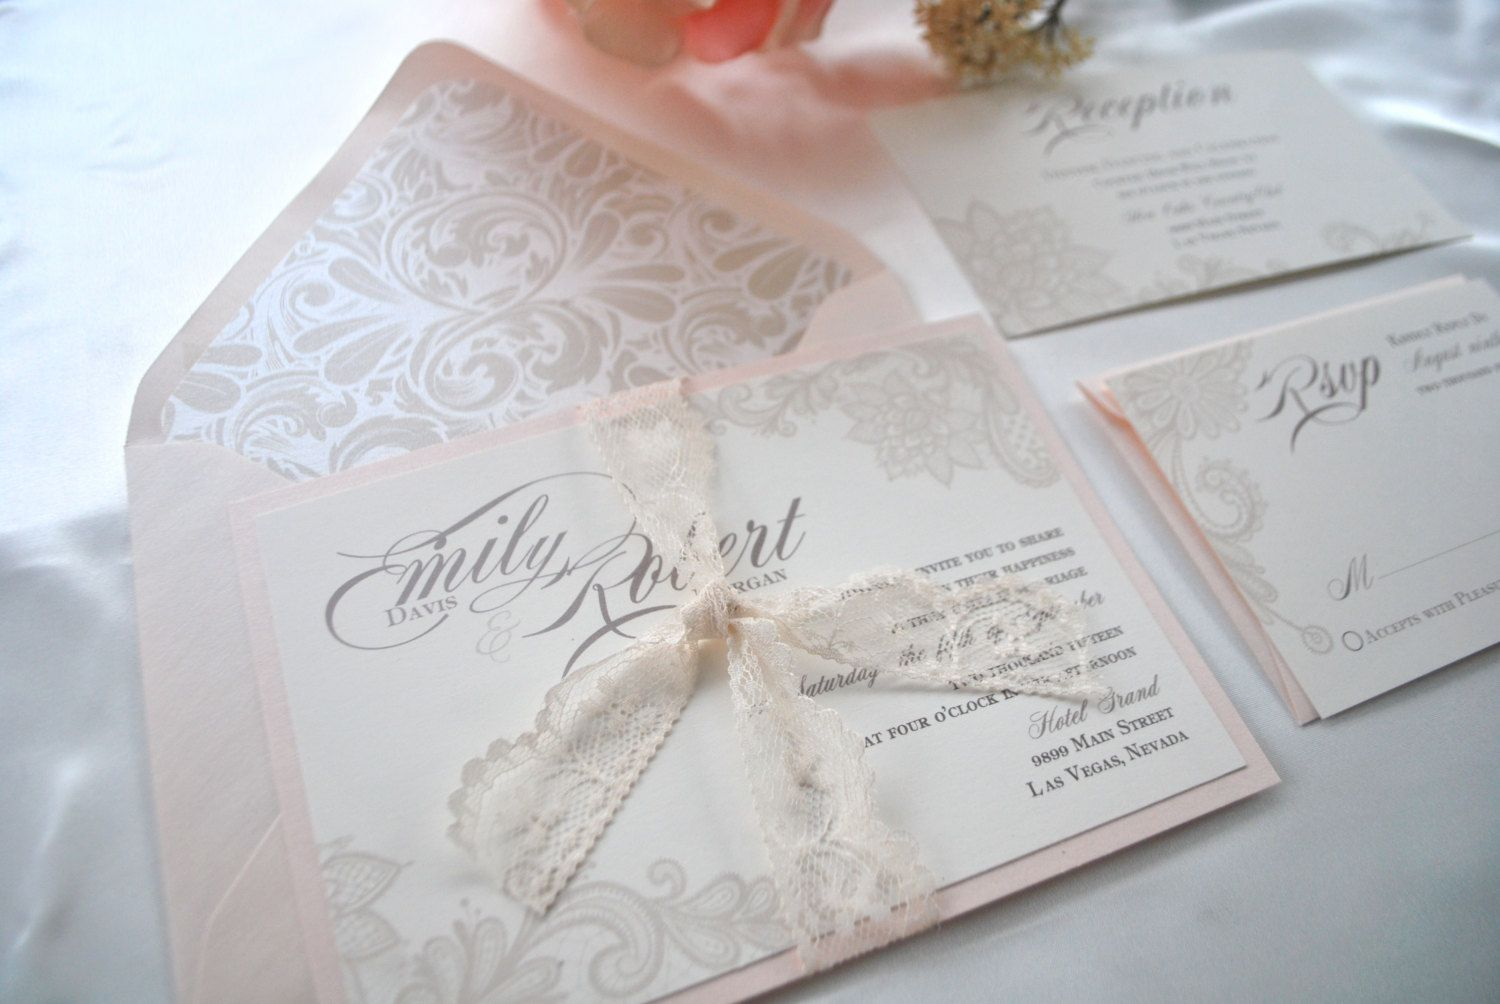 ***PLEASE DO NOT PURCHASE THIS LISTING *NOT A SAMPLE LISTING***  Perfect for any season, location and beautiful in any color theme. A delicate touch of romance and elegance will be the perfect touch for your lace theme.  Sample as seen- 5x7 Invitation is printed on Cream Cardstock and mounted on Metallic Blush cardstock. Invitation is wrapped with an Ivory lace ribbon. Metallic Blush envelope is lined in a mist color flourish pattern in metallic quartz paper. Rsvp card is printed on cream…